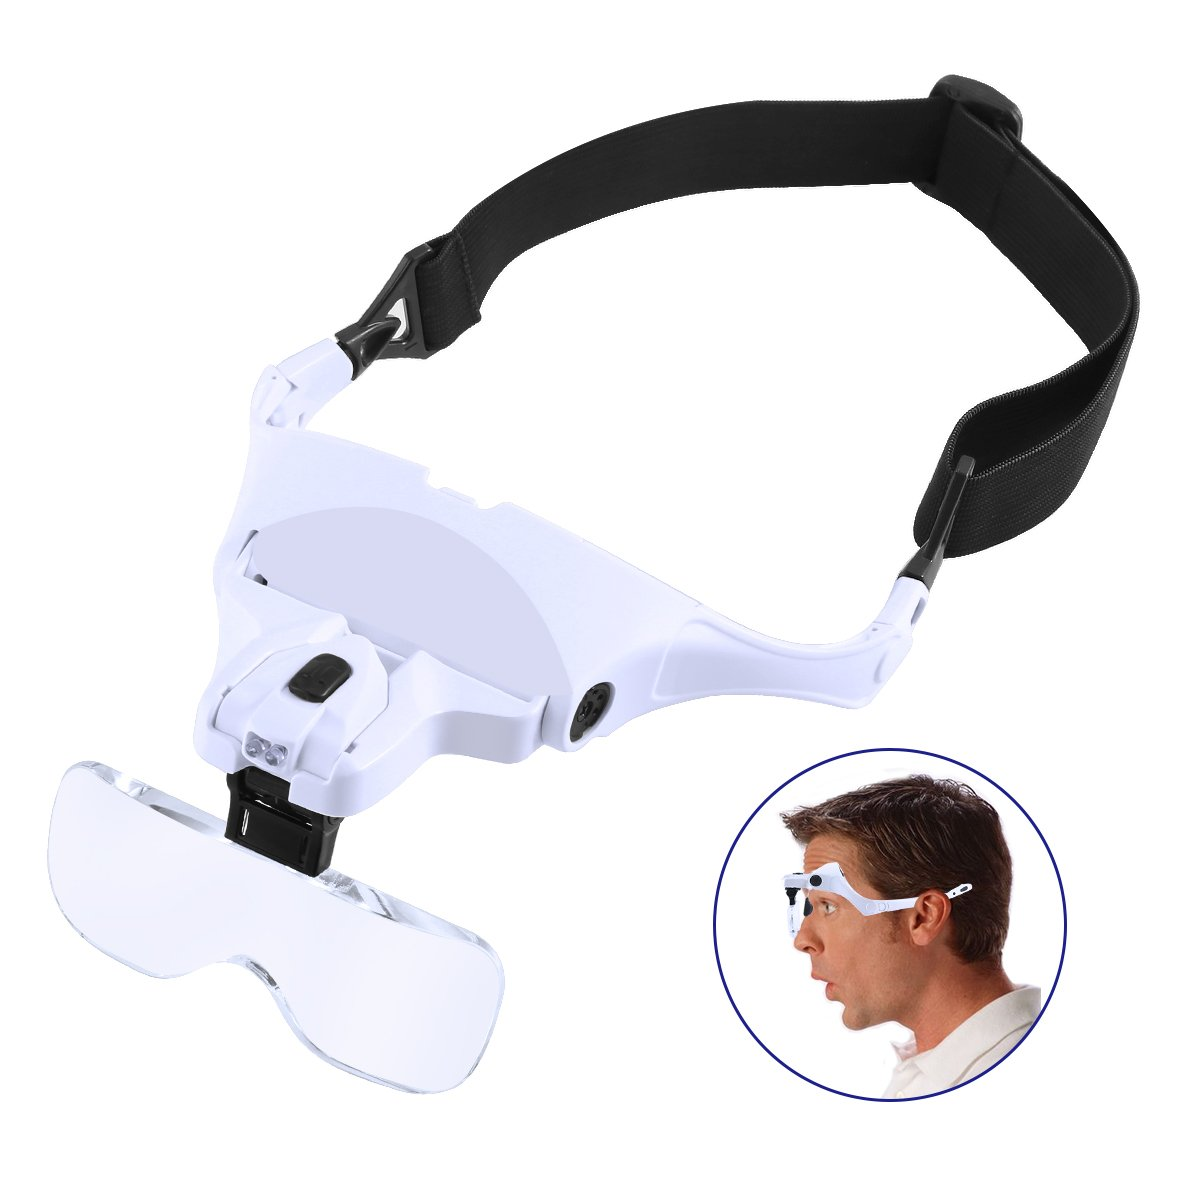 Headband Magnifier with LED Light, SOONHUA Head-Mounted Magnifier Handsfree Reading Magnifying Glasses, Jeweler's Loupe Glasses (1.0X, 1.5X, 2.0X, 2.5X, 3.5X) 5 Replaceable Lenses